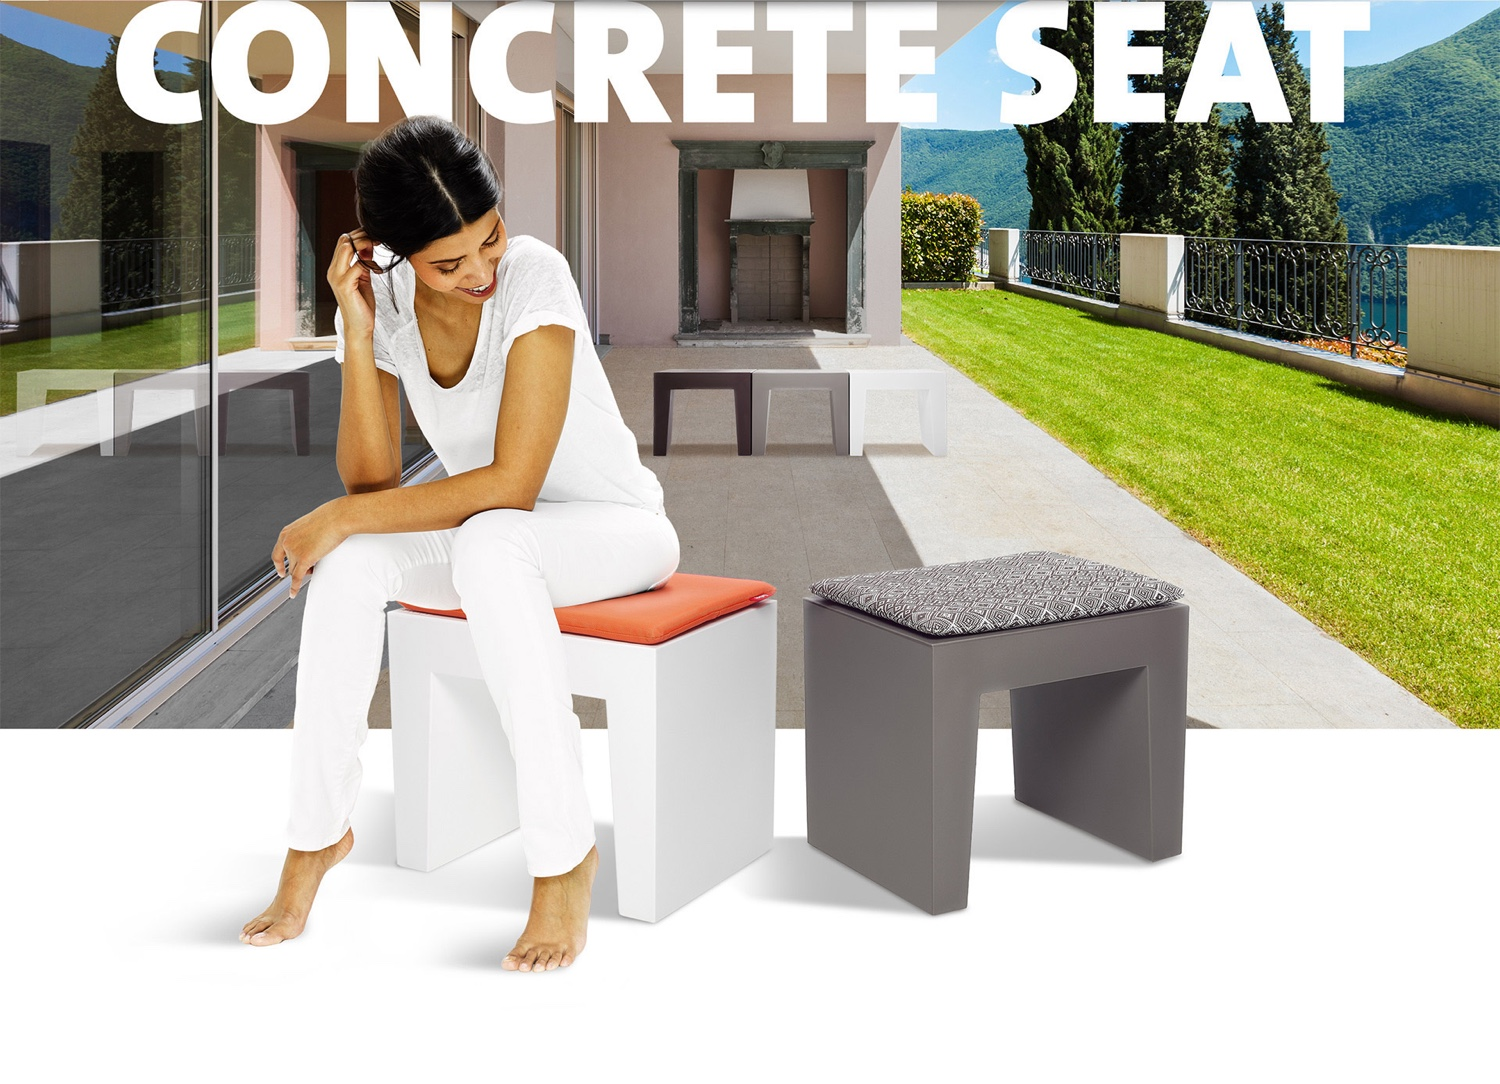 Concrete Seat by Fatboy. Image© Fatboy.